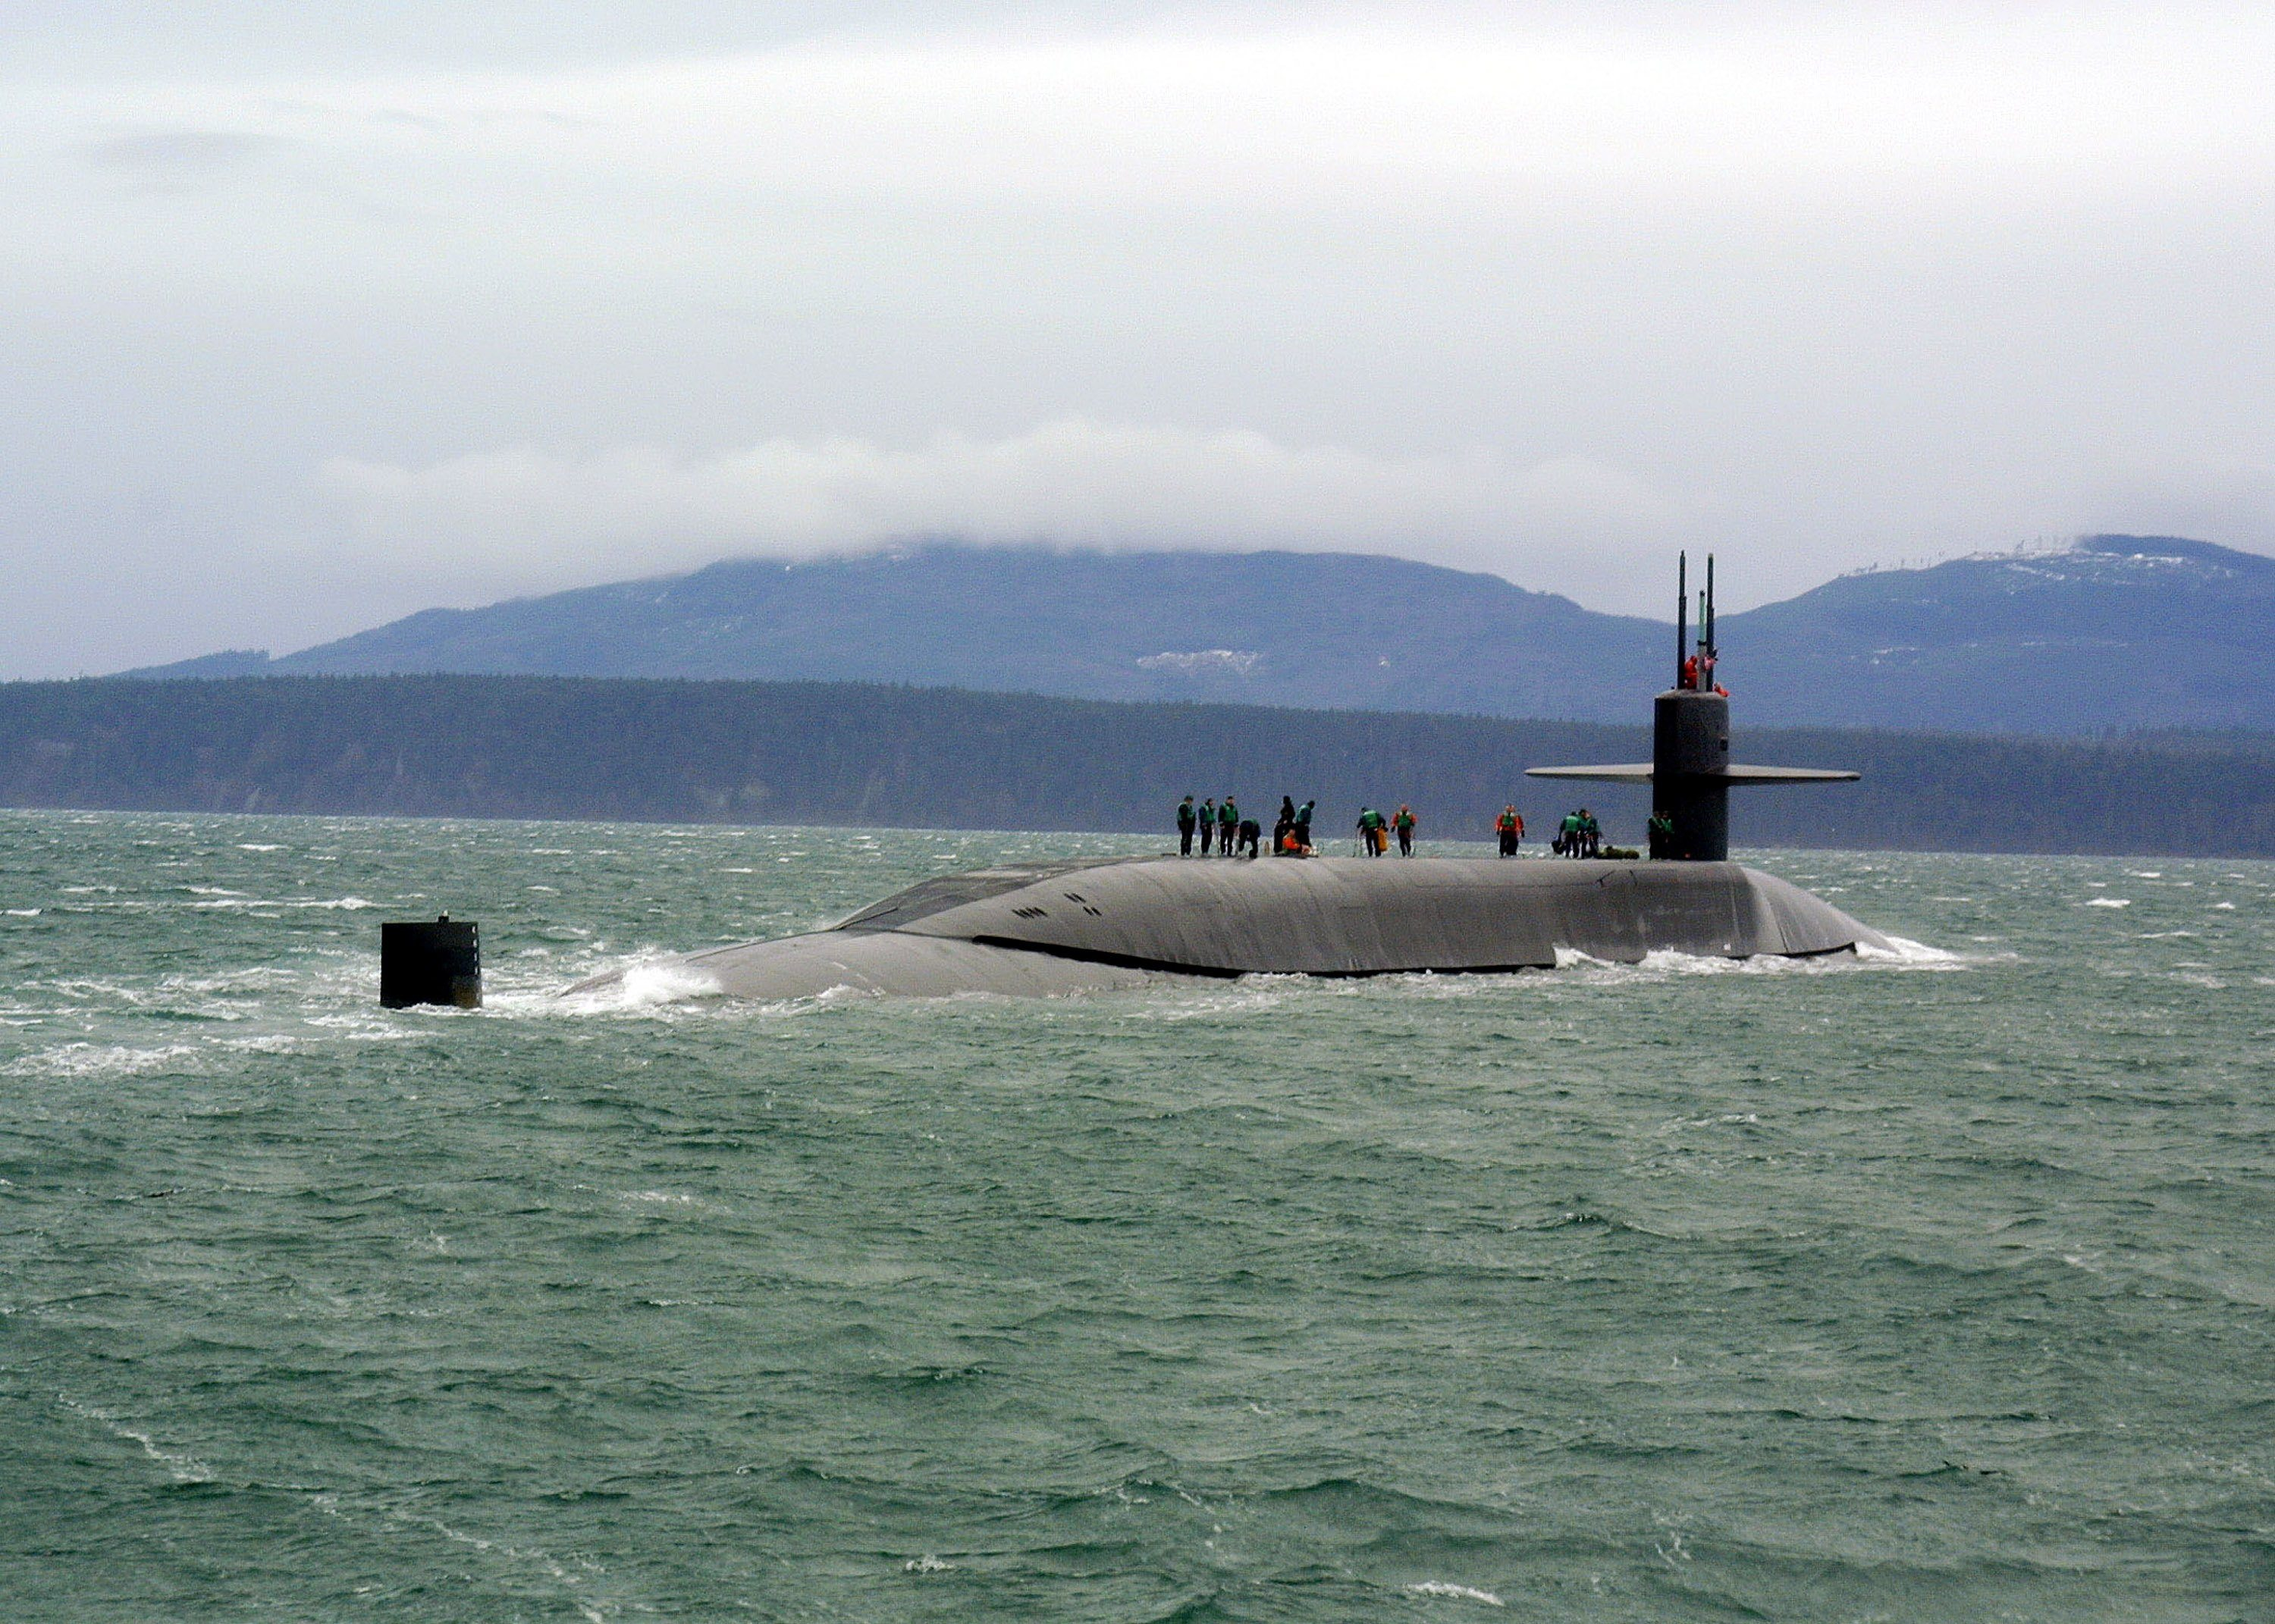 Guided Missile Submarine Shown To Media